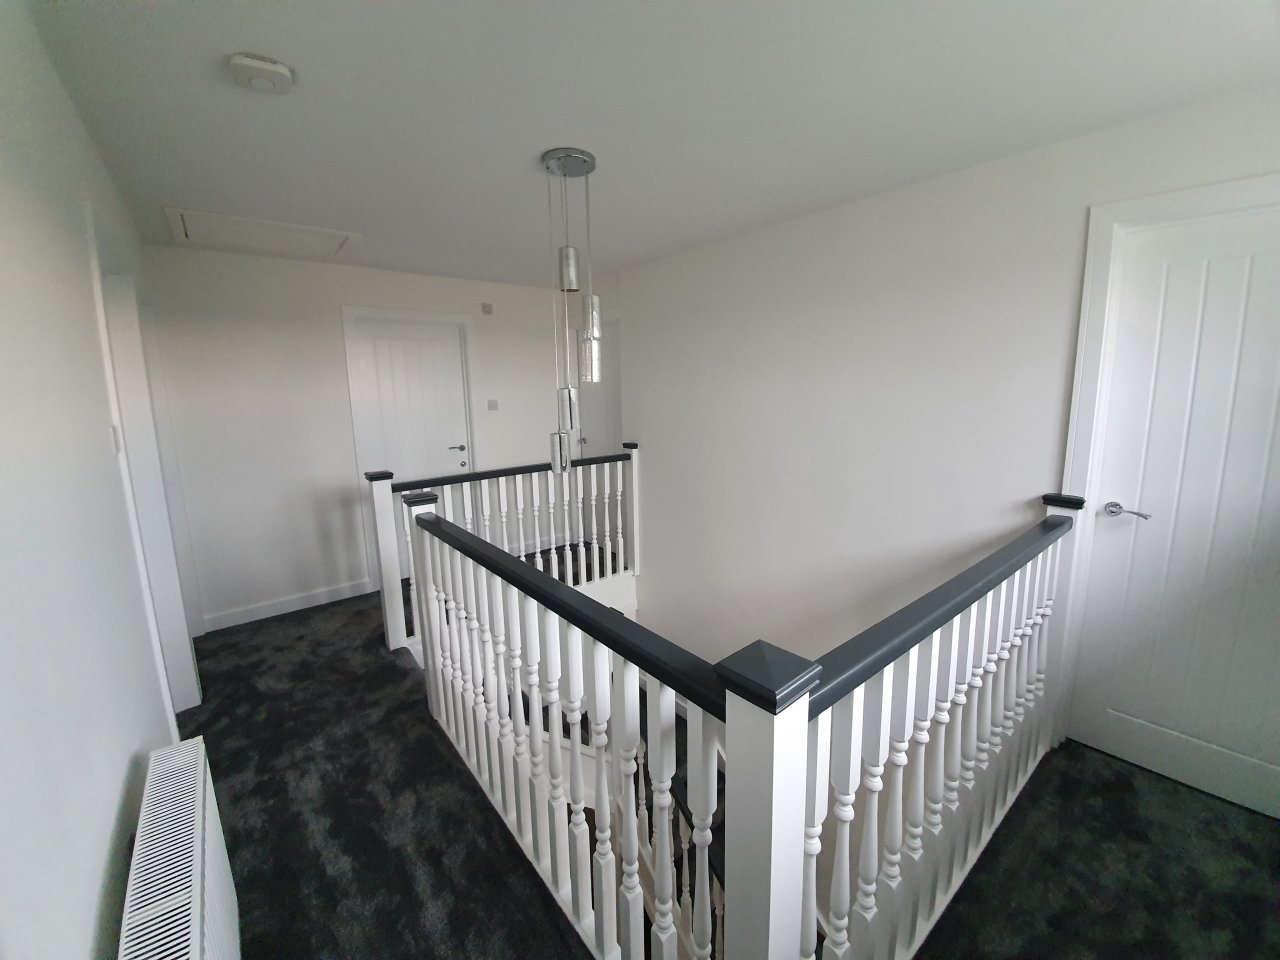 A hallway, stairwell and landing after being decorated, striking black and white